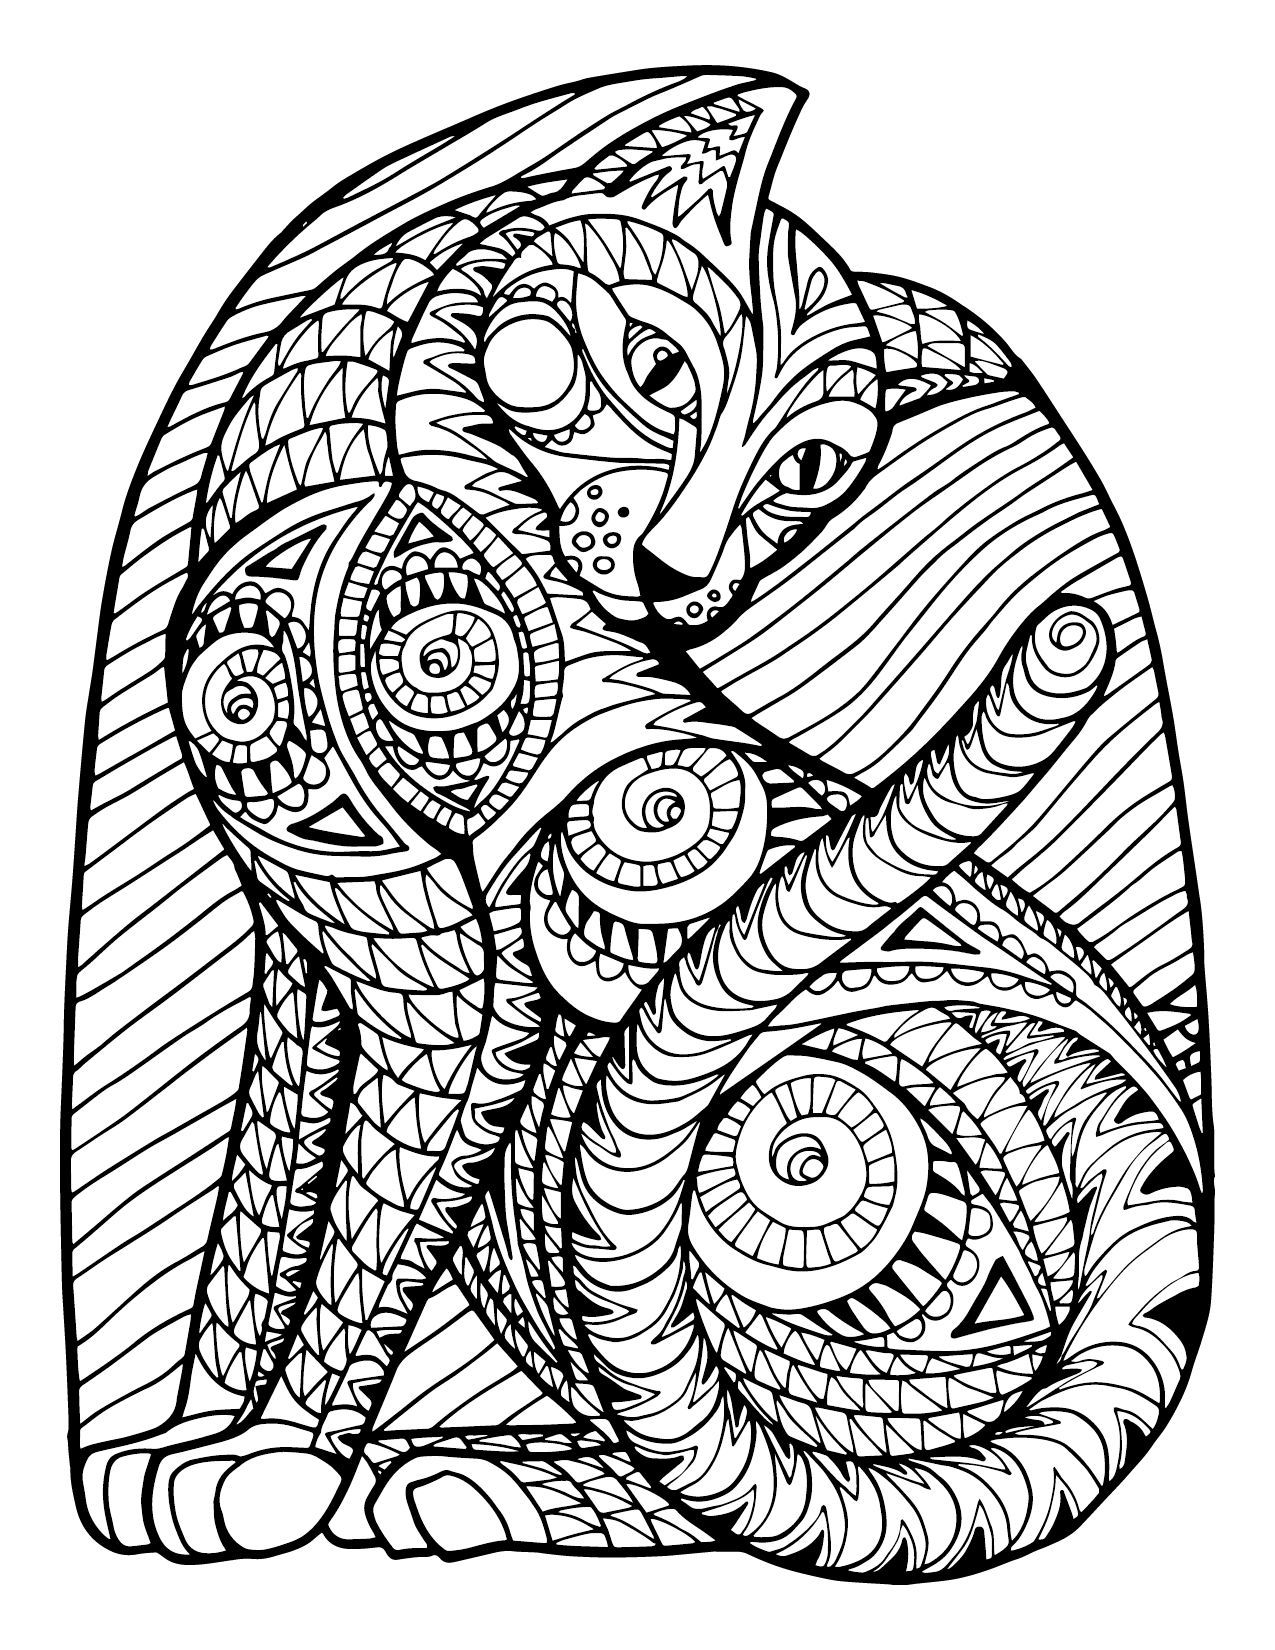 How much is the coloring book for adults - Here Is Another Sample From Our First Adult Coloring Book Hope You Like It